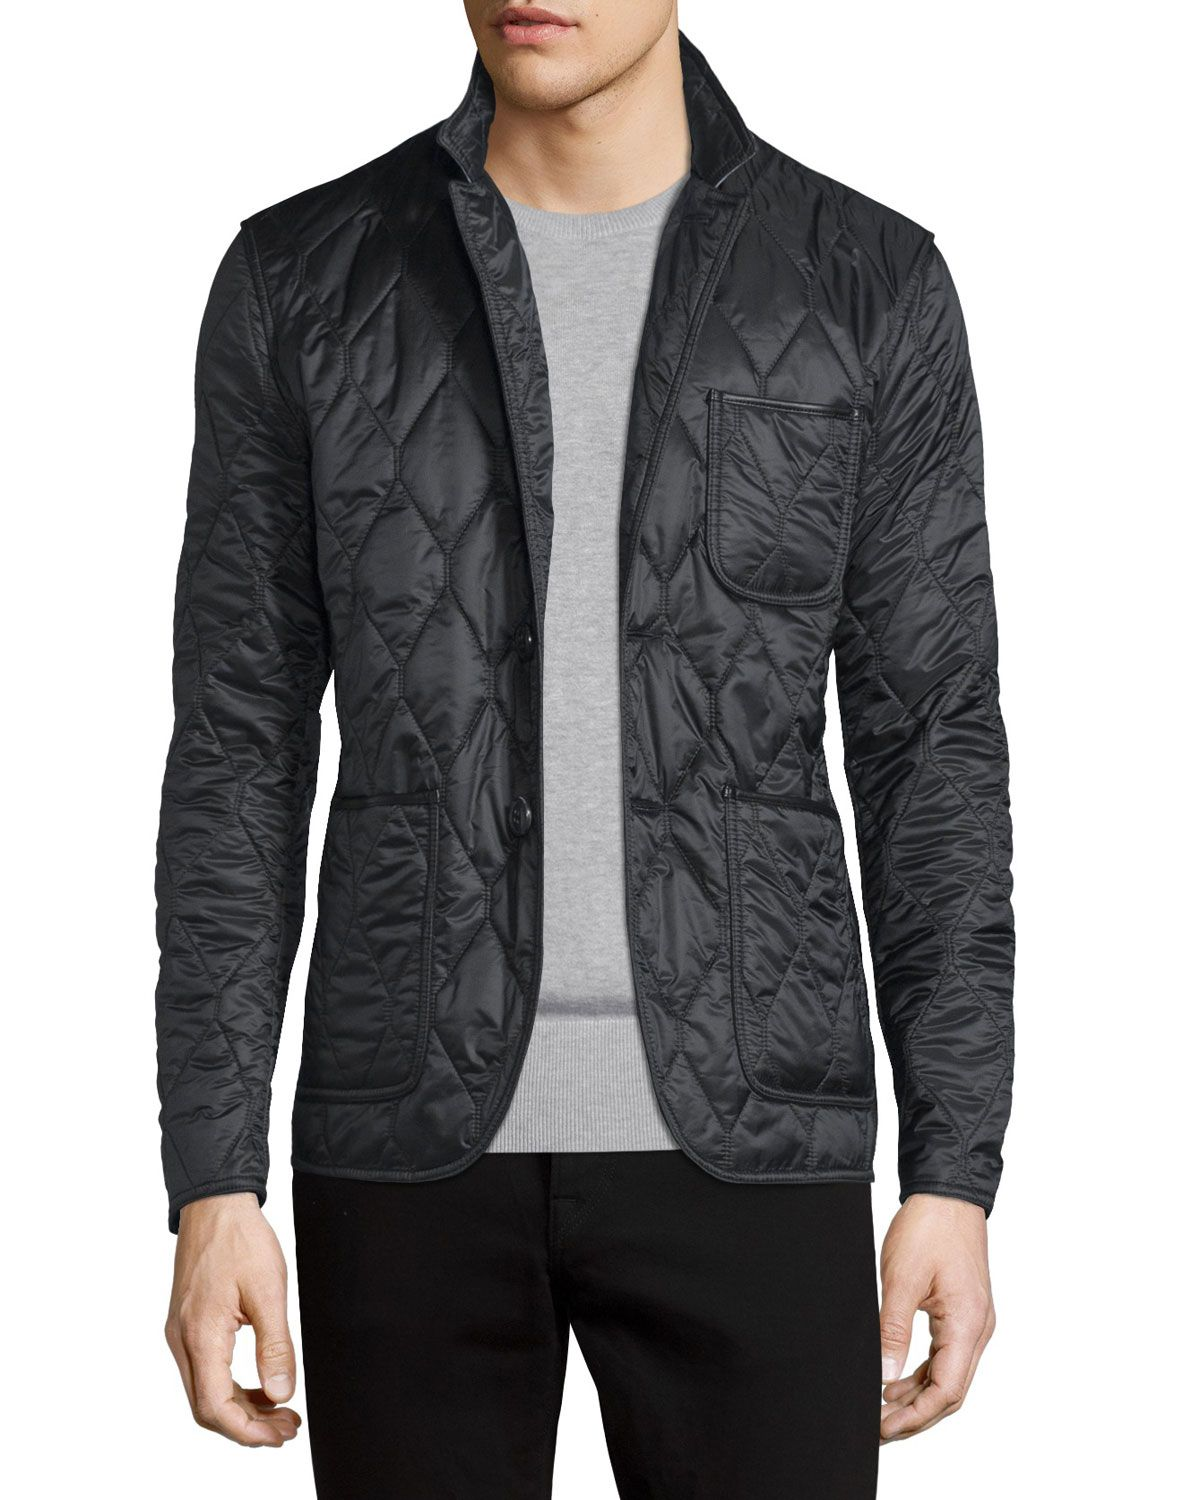 brit mens clothing black classic gallery burberry quilt lyst in quilted jacket for men product